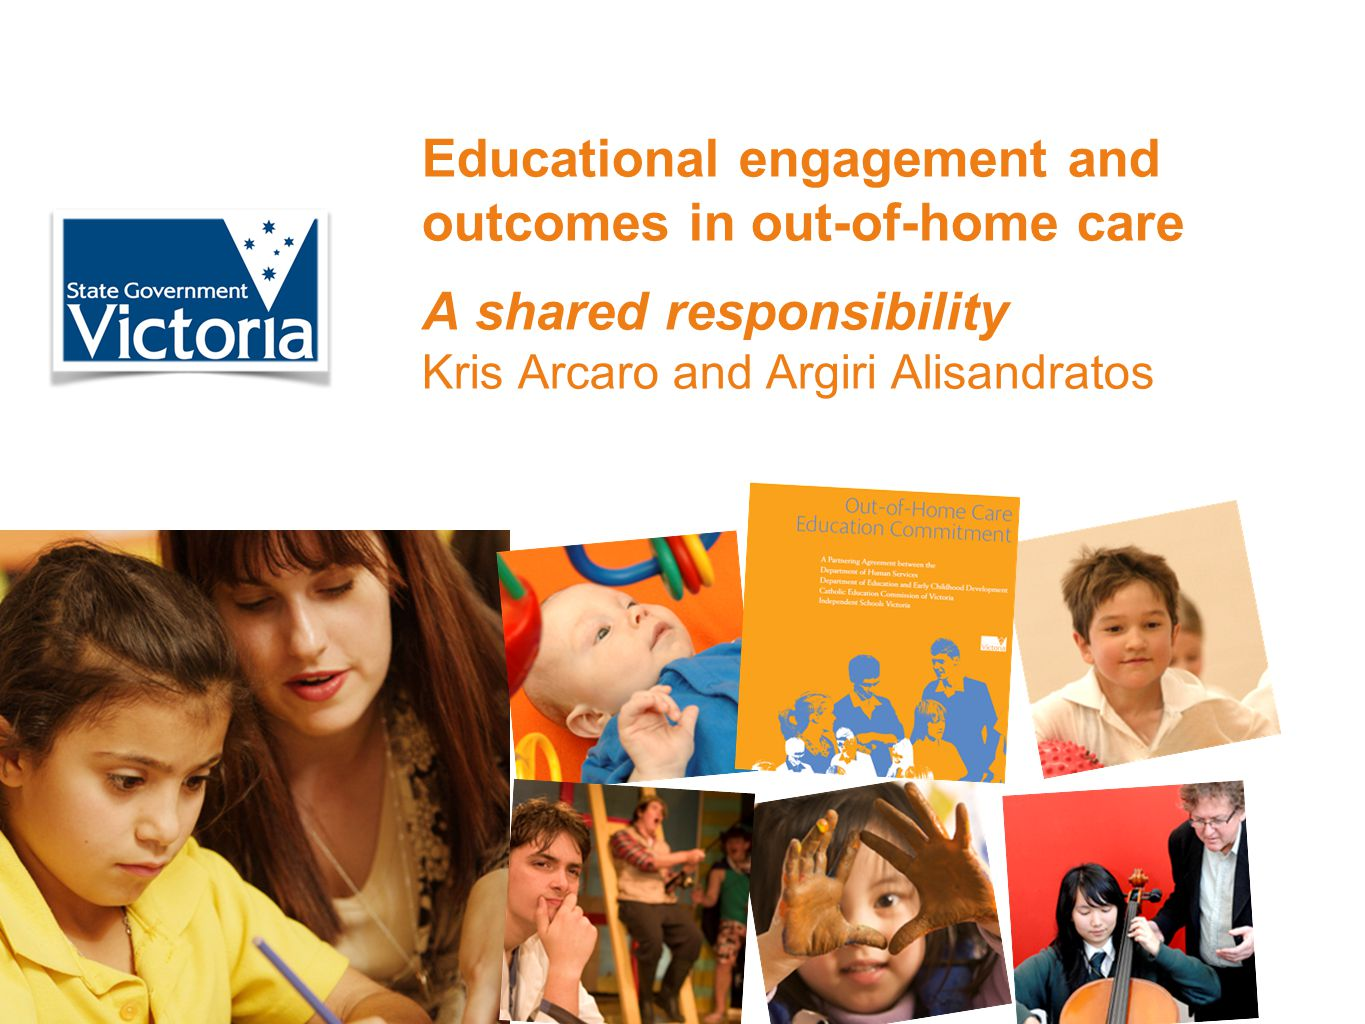 Educational engagement and outcomes in out-of-home care A shared responsibility Kris Arcaro and Argiri Alisandratos